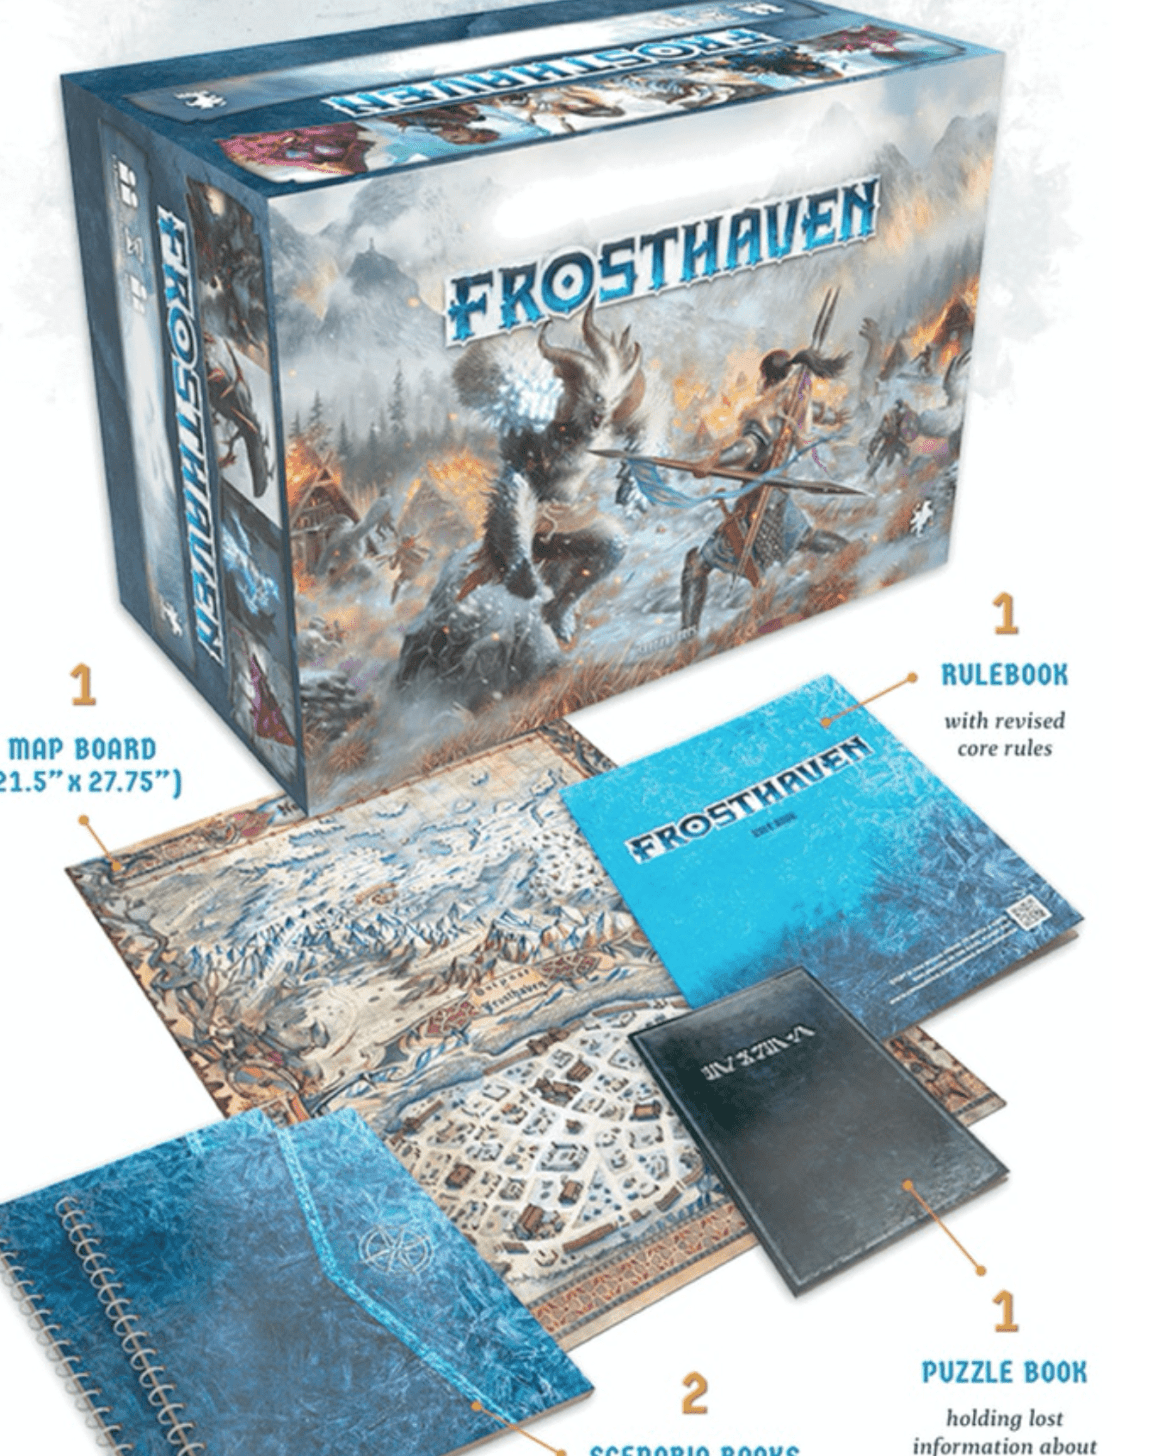 Gloomhaven gets a sequel: Frosthaven